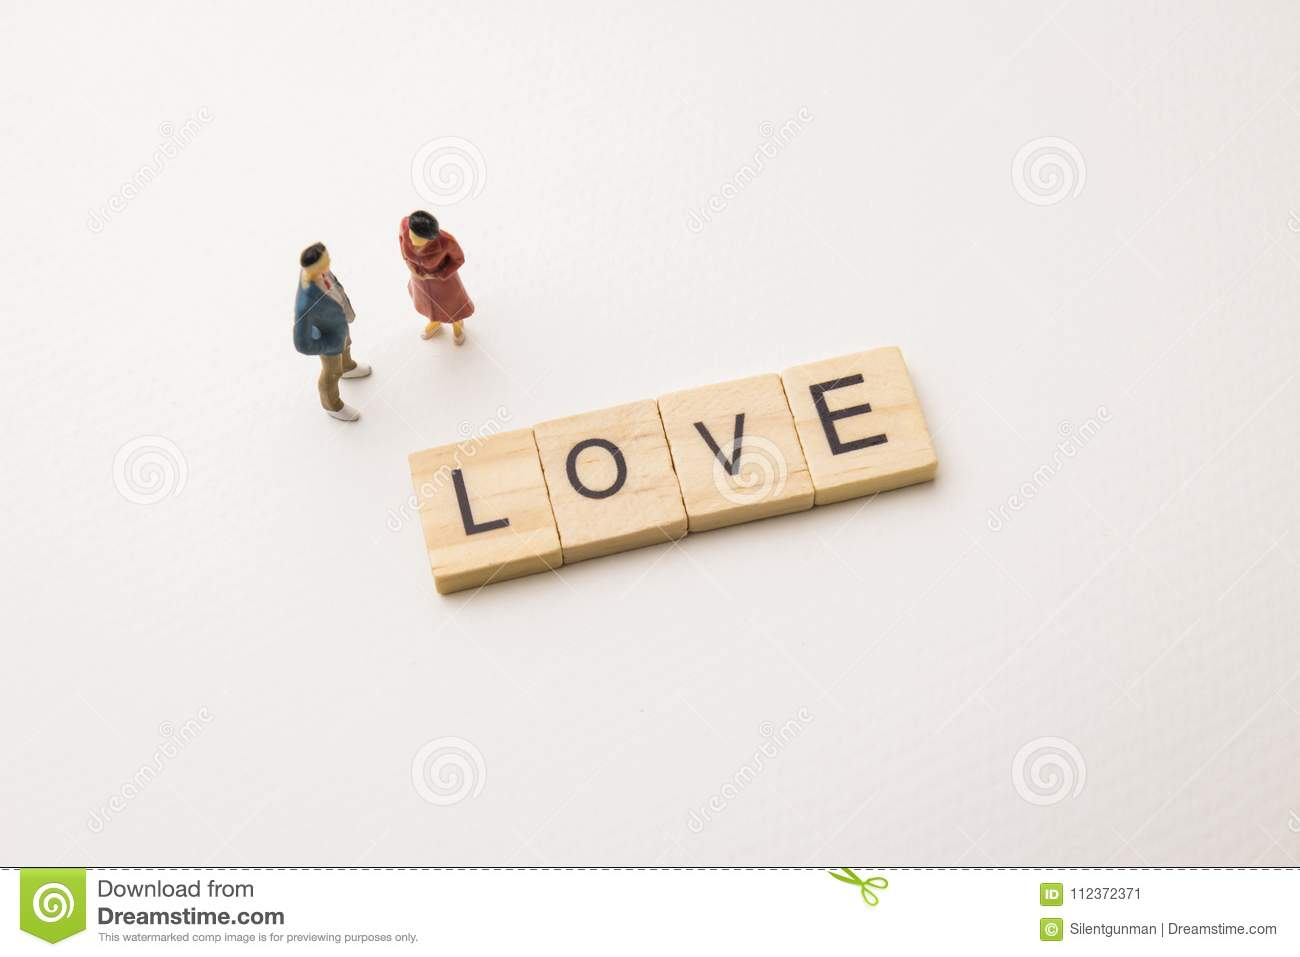 lover figures dating on love conceptual stock image image of